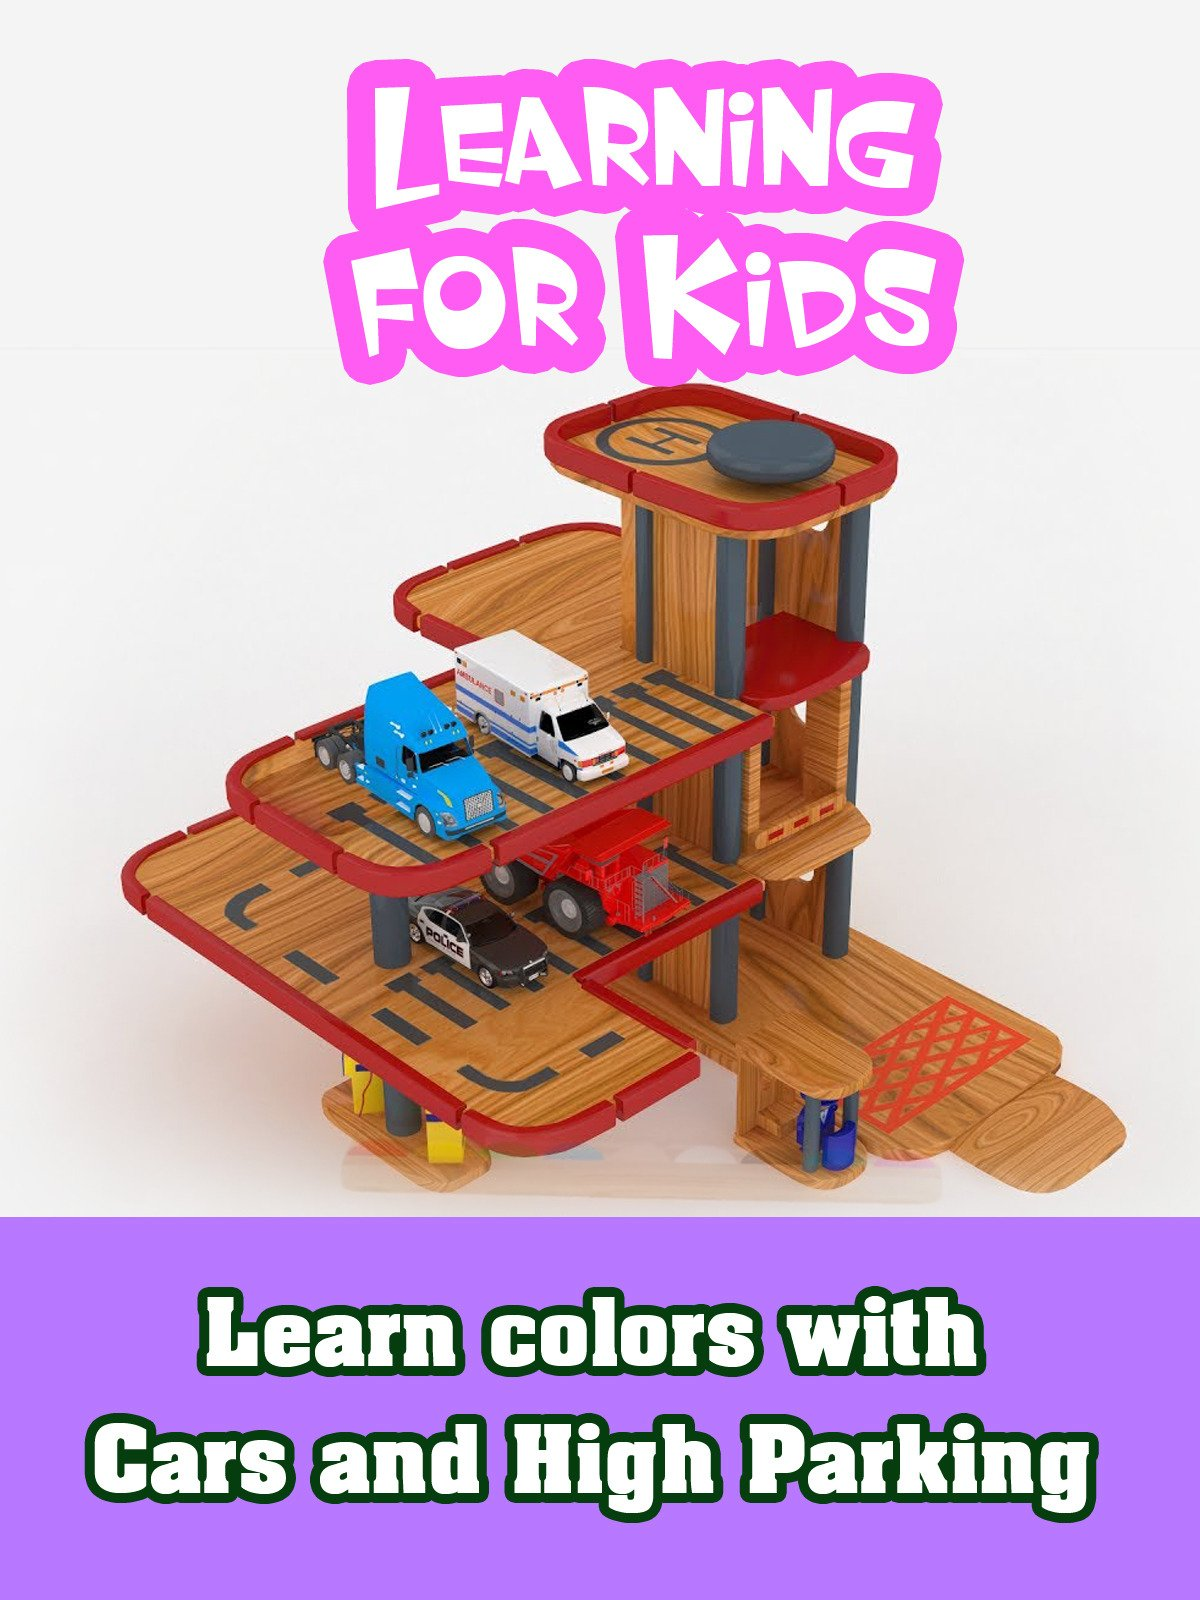 Learn Colors with Cars and High Parking